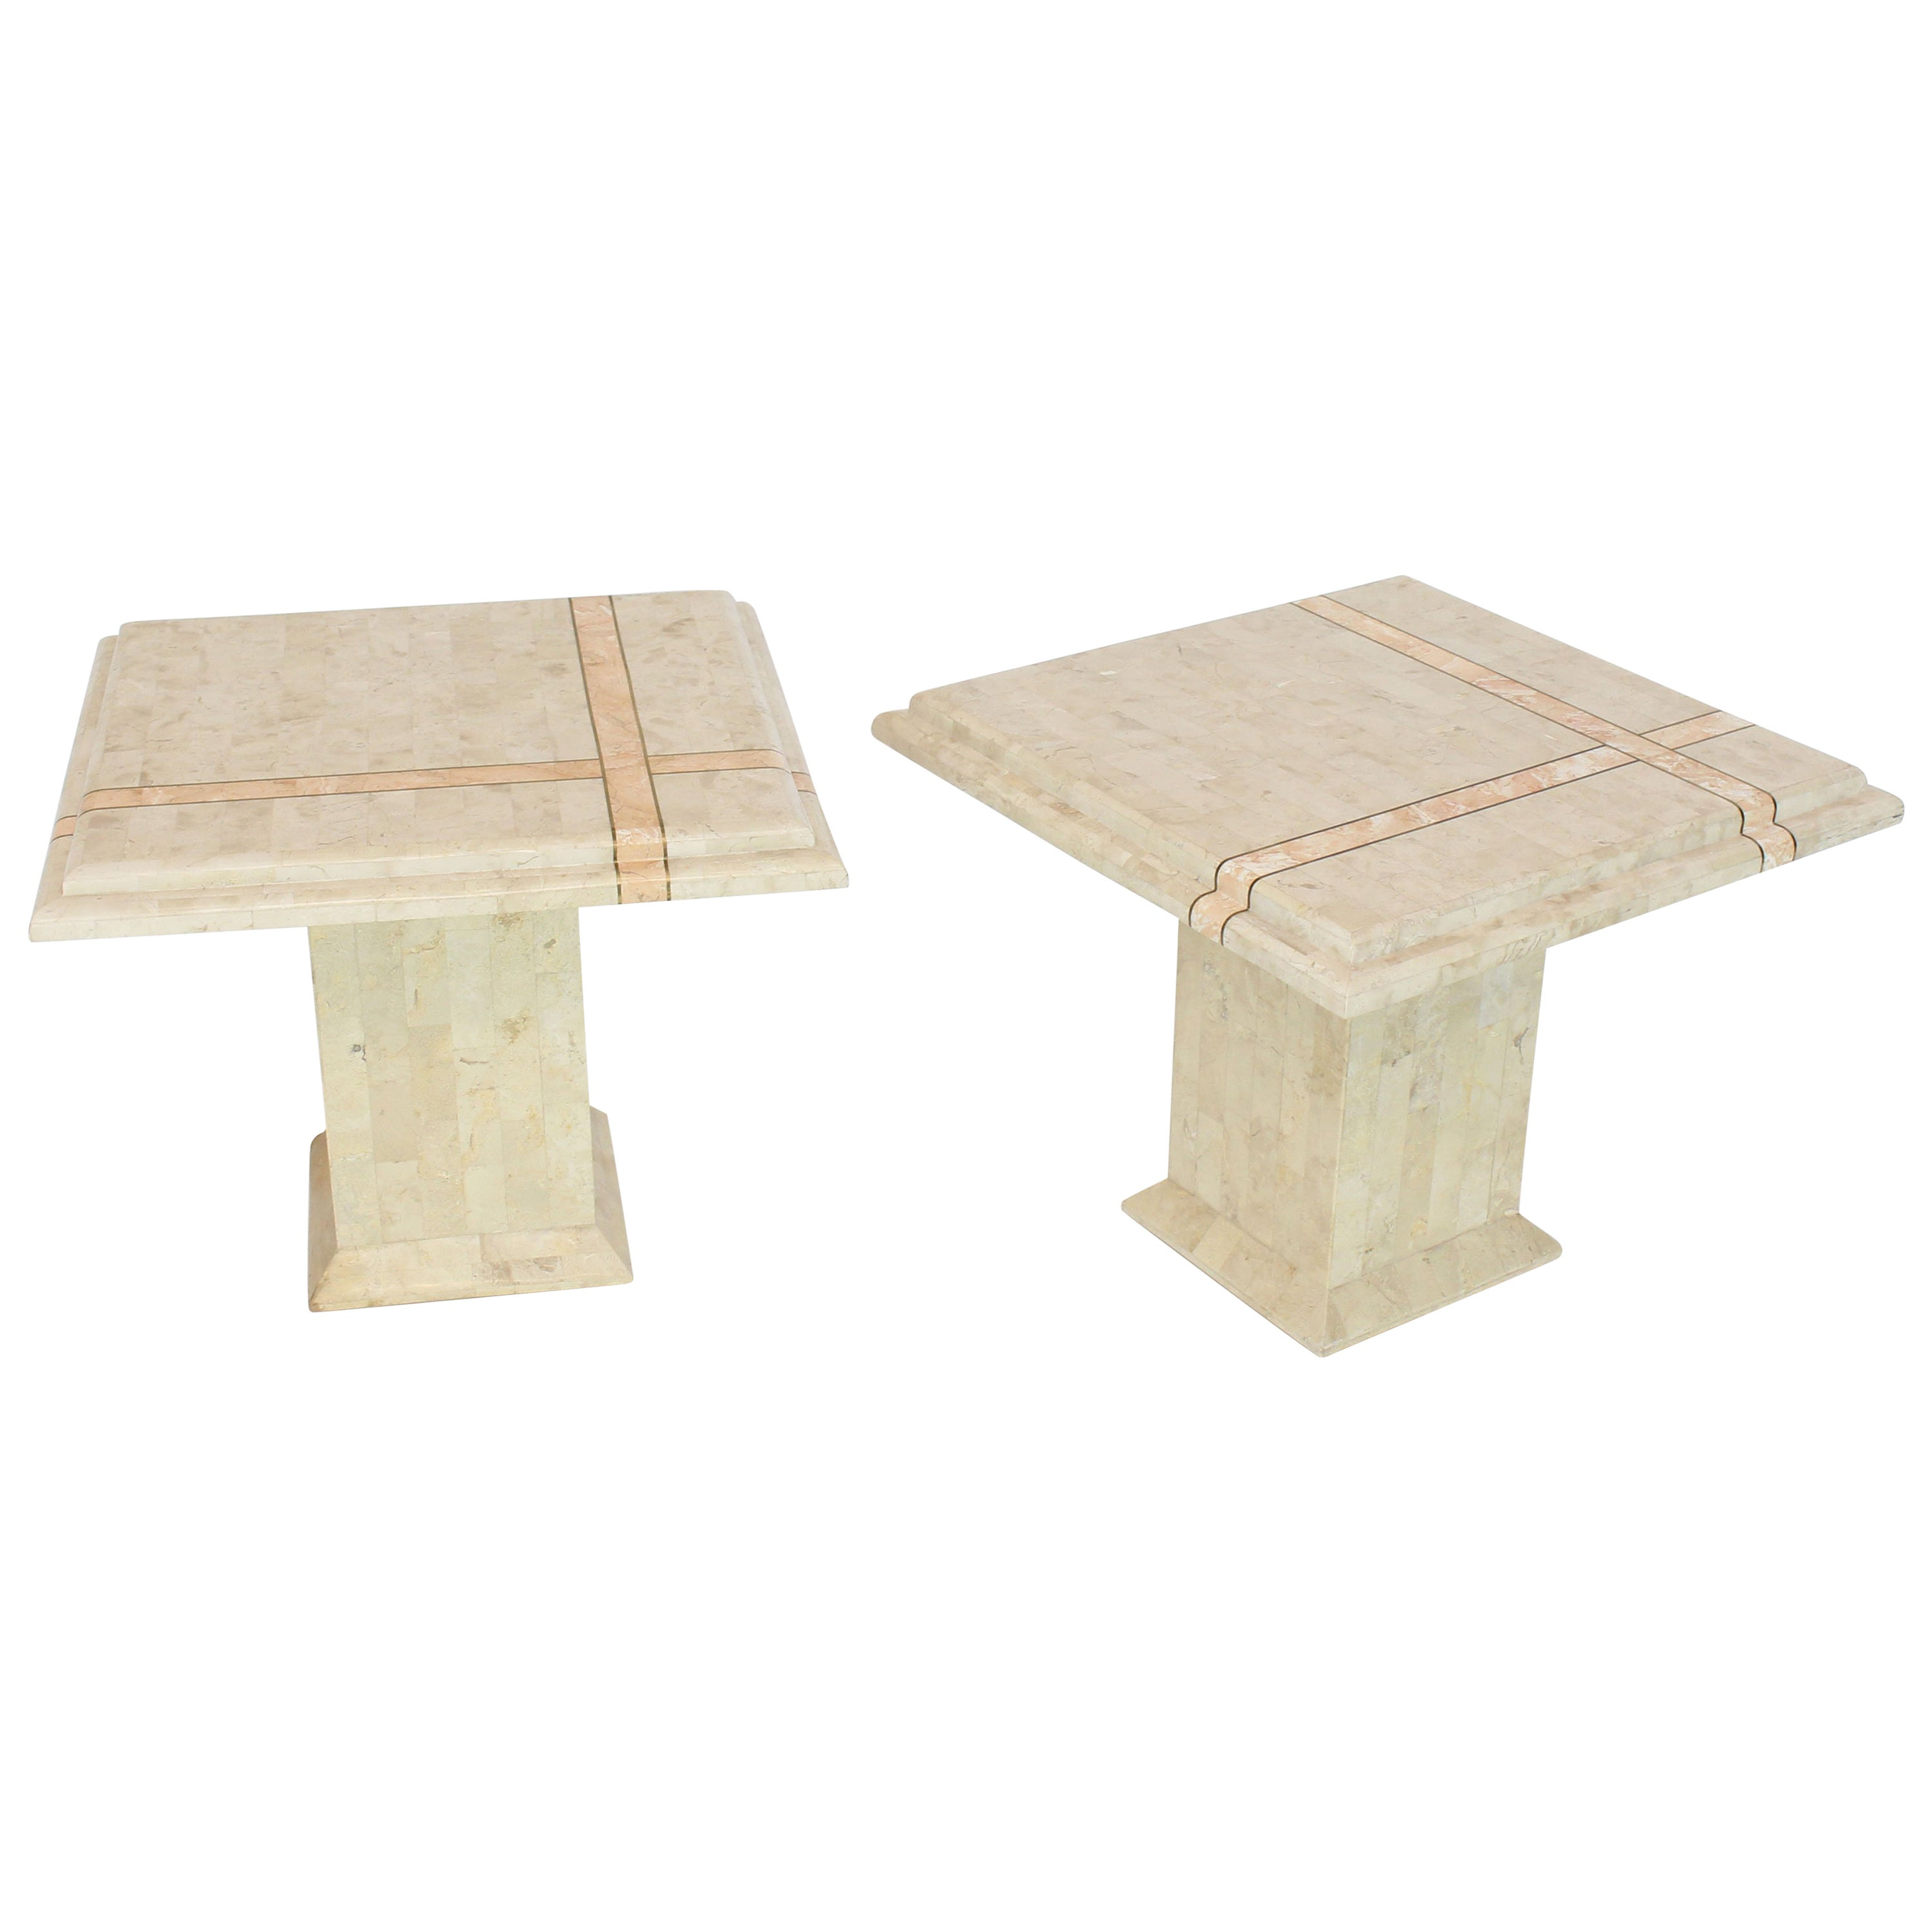 Pair of Tessellated Stone Tile Square Pedestal Shape End Side Tables Stands